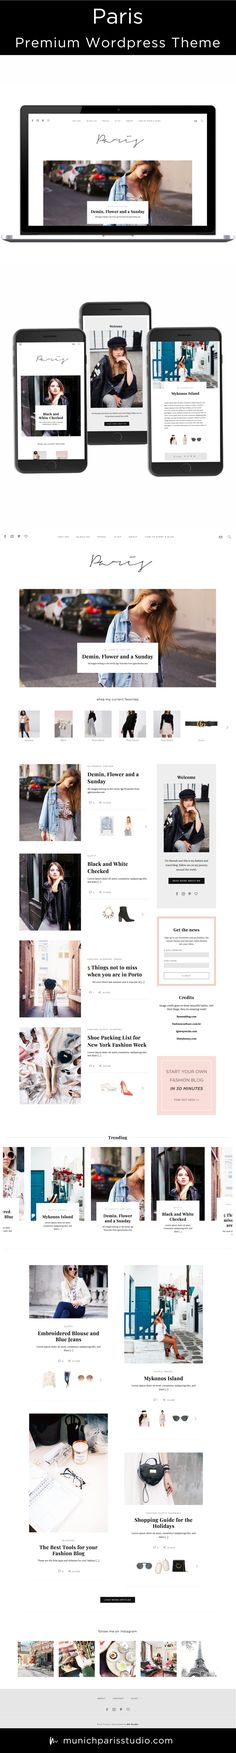 Paris is a Premium Feminine WordPress Theme for the Fashion and Lifestyle Bloggers. Clean, Modern and Versatile Website Design with perfect Shopping Widget Solution. Monetize your Content through the MPS Shopping Plugin. Fully Responsive on all Devices. Customizable Homepage Layout, Single Post Layout, Fonts and Colours. Visit the Demo Site to see full features. MunichParis Studio.